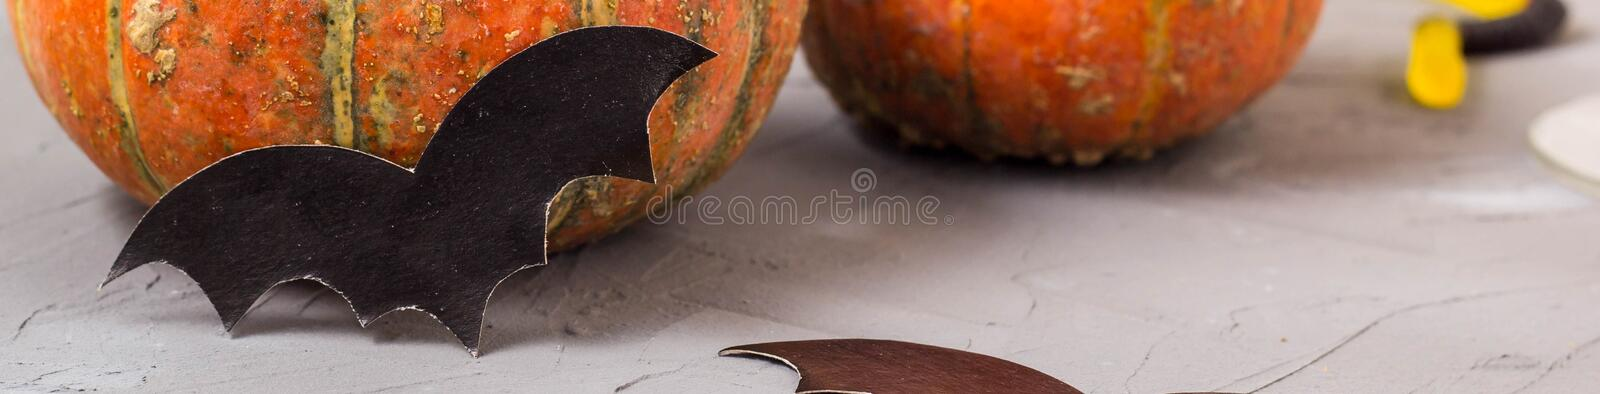 Banner of orange pumpkin and paper bats on white table, halloween concept. Holiday, spooky, autumn, decoration, background, symbol, scary, season, october stock image